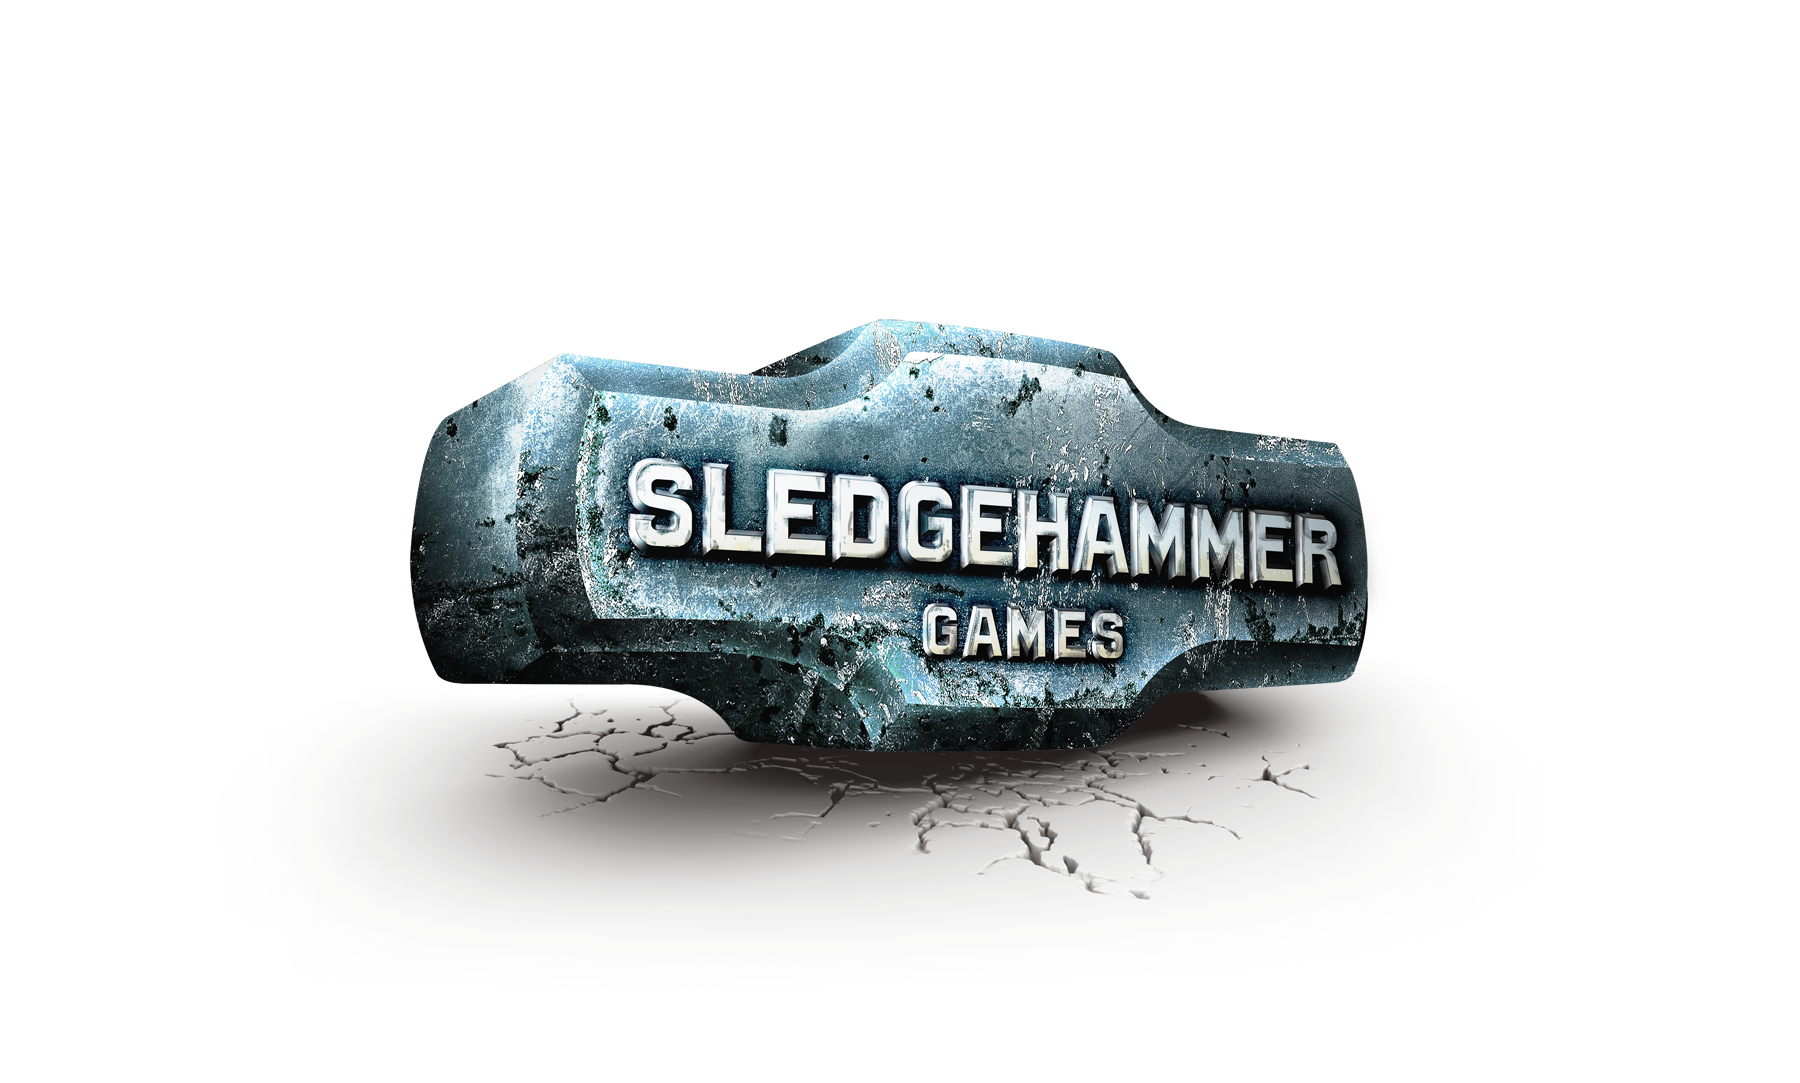 Sledgehammer Games Tease Call of Duty 2017, Returning To ...